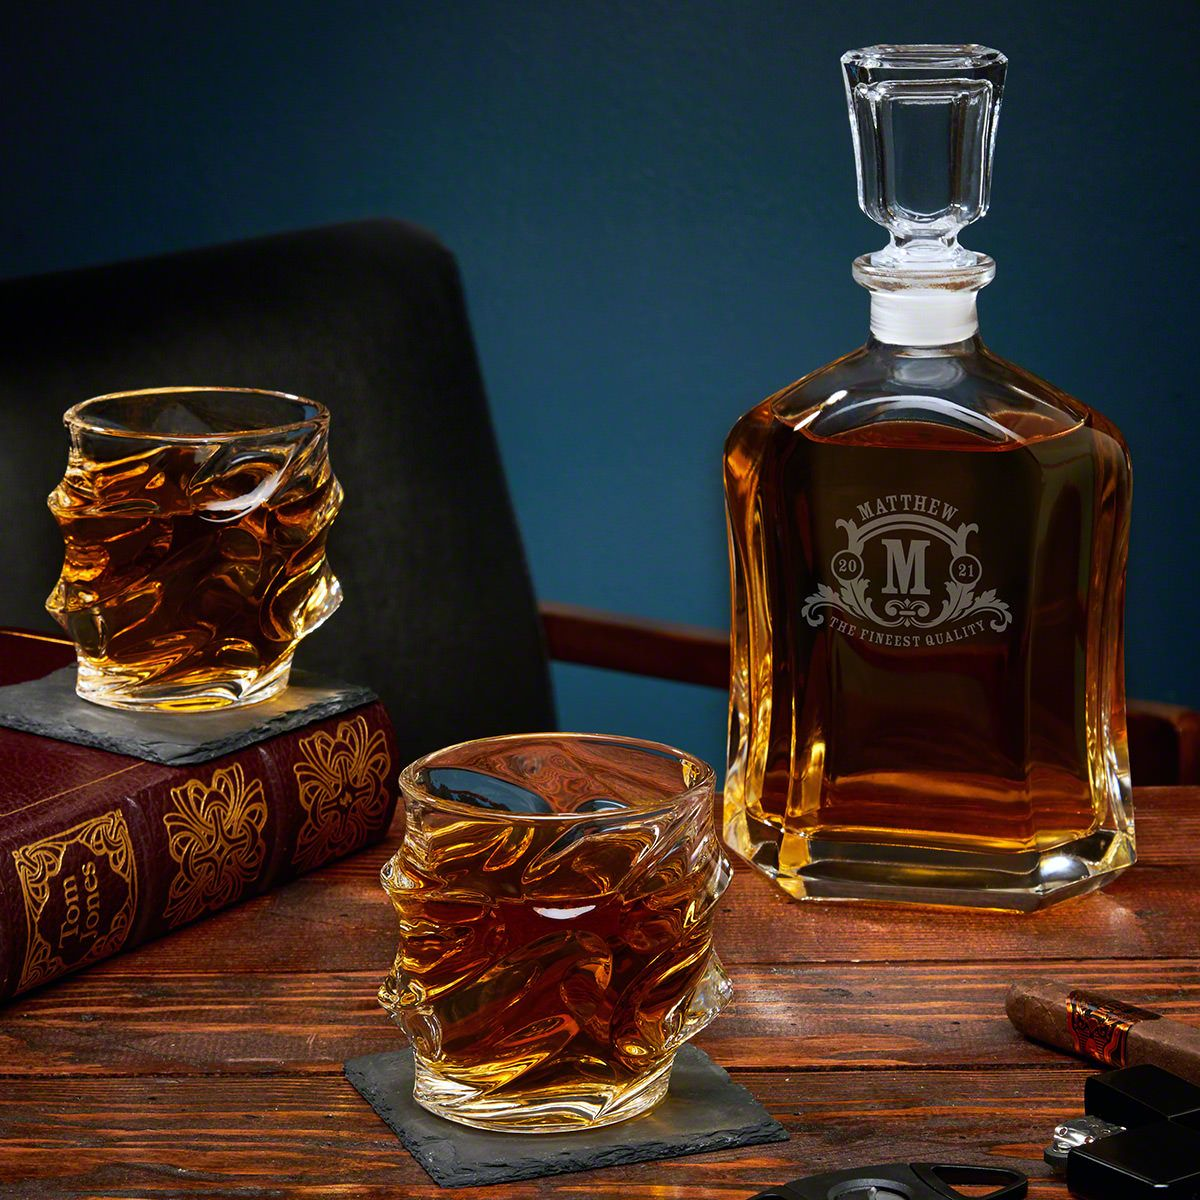 Westbrook Personalized Decanter Set with Sculpted Glasses